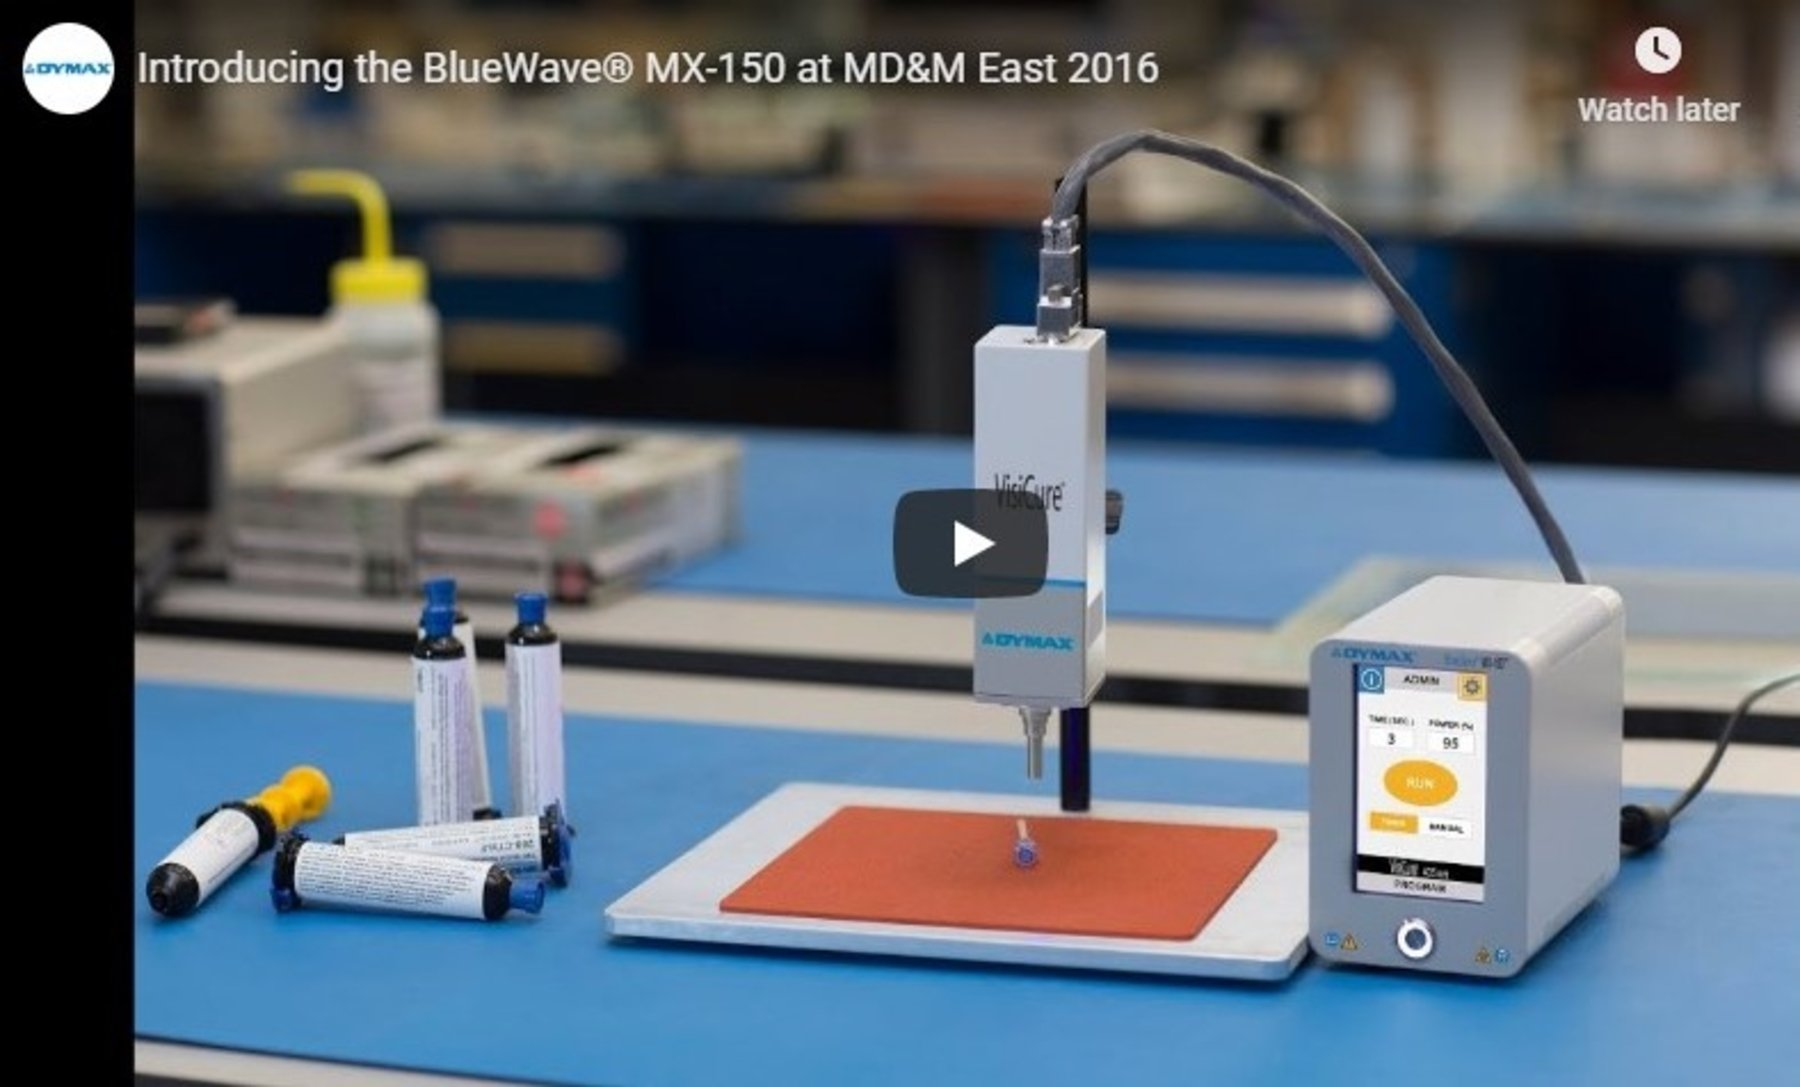 Introducing the BlueWave® MX-150 LED Spot-Curing System at MD&M East 2016